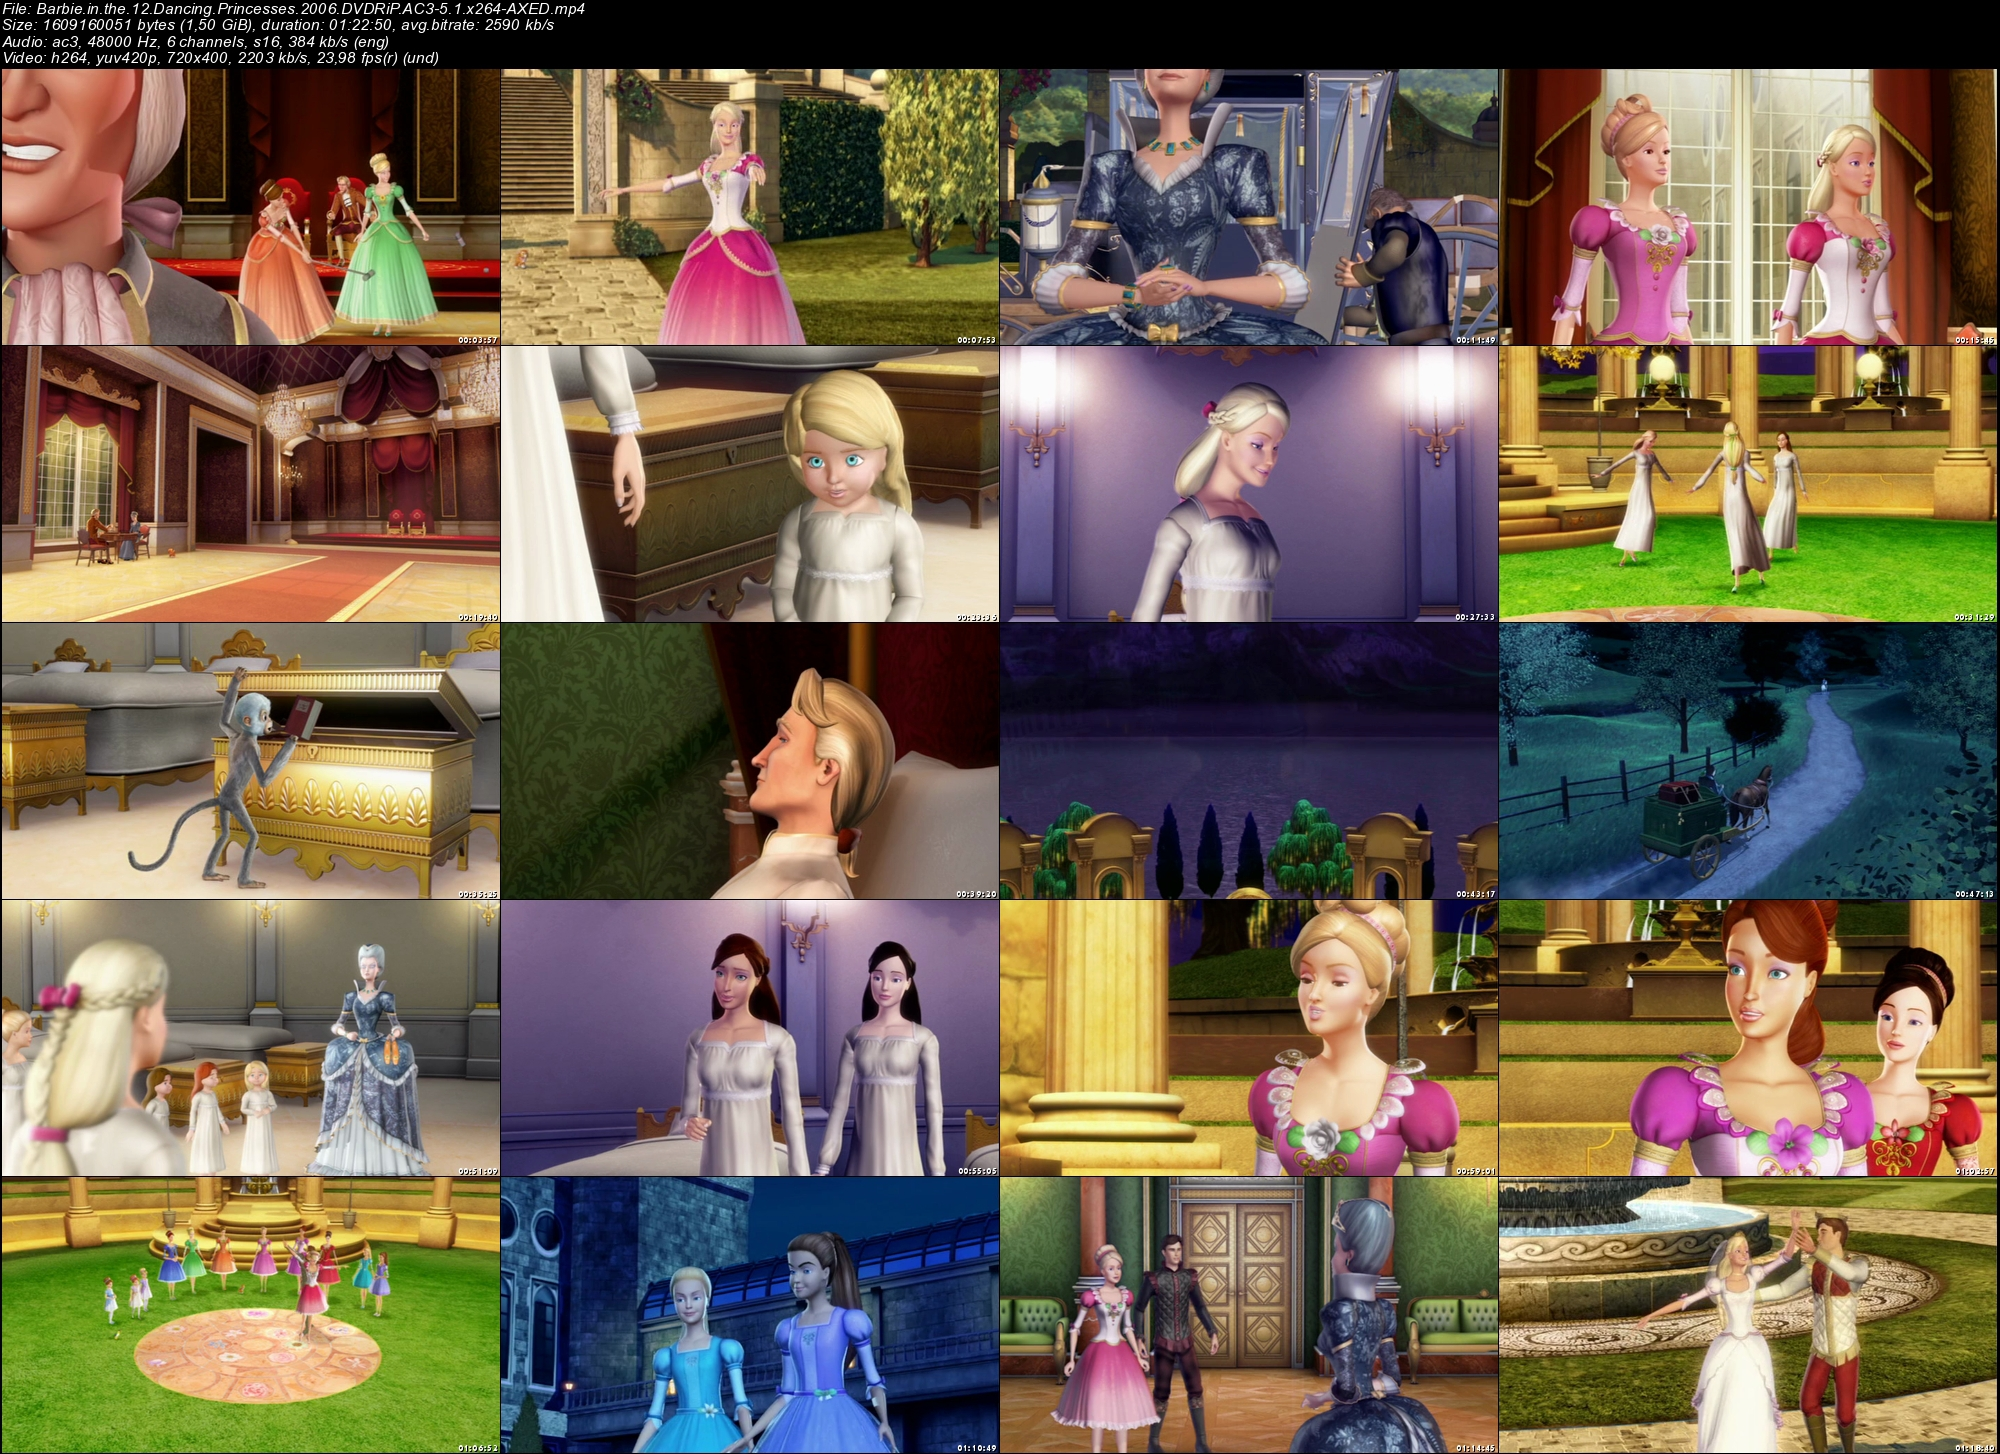 Some Screencap Collages Barbie In The 12 Dancing Princesses